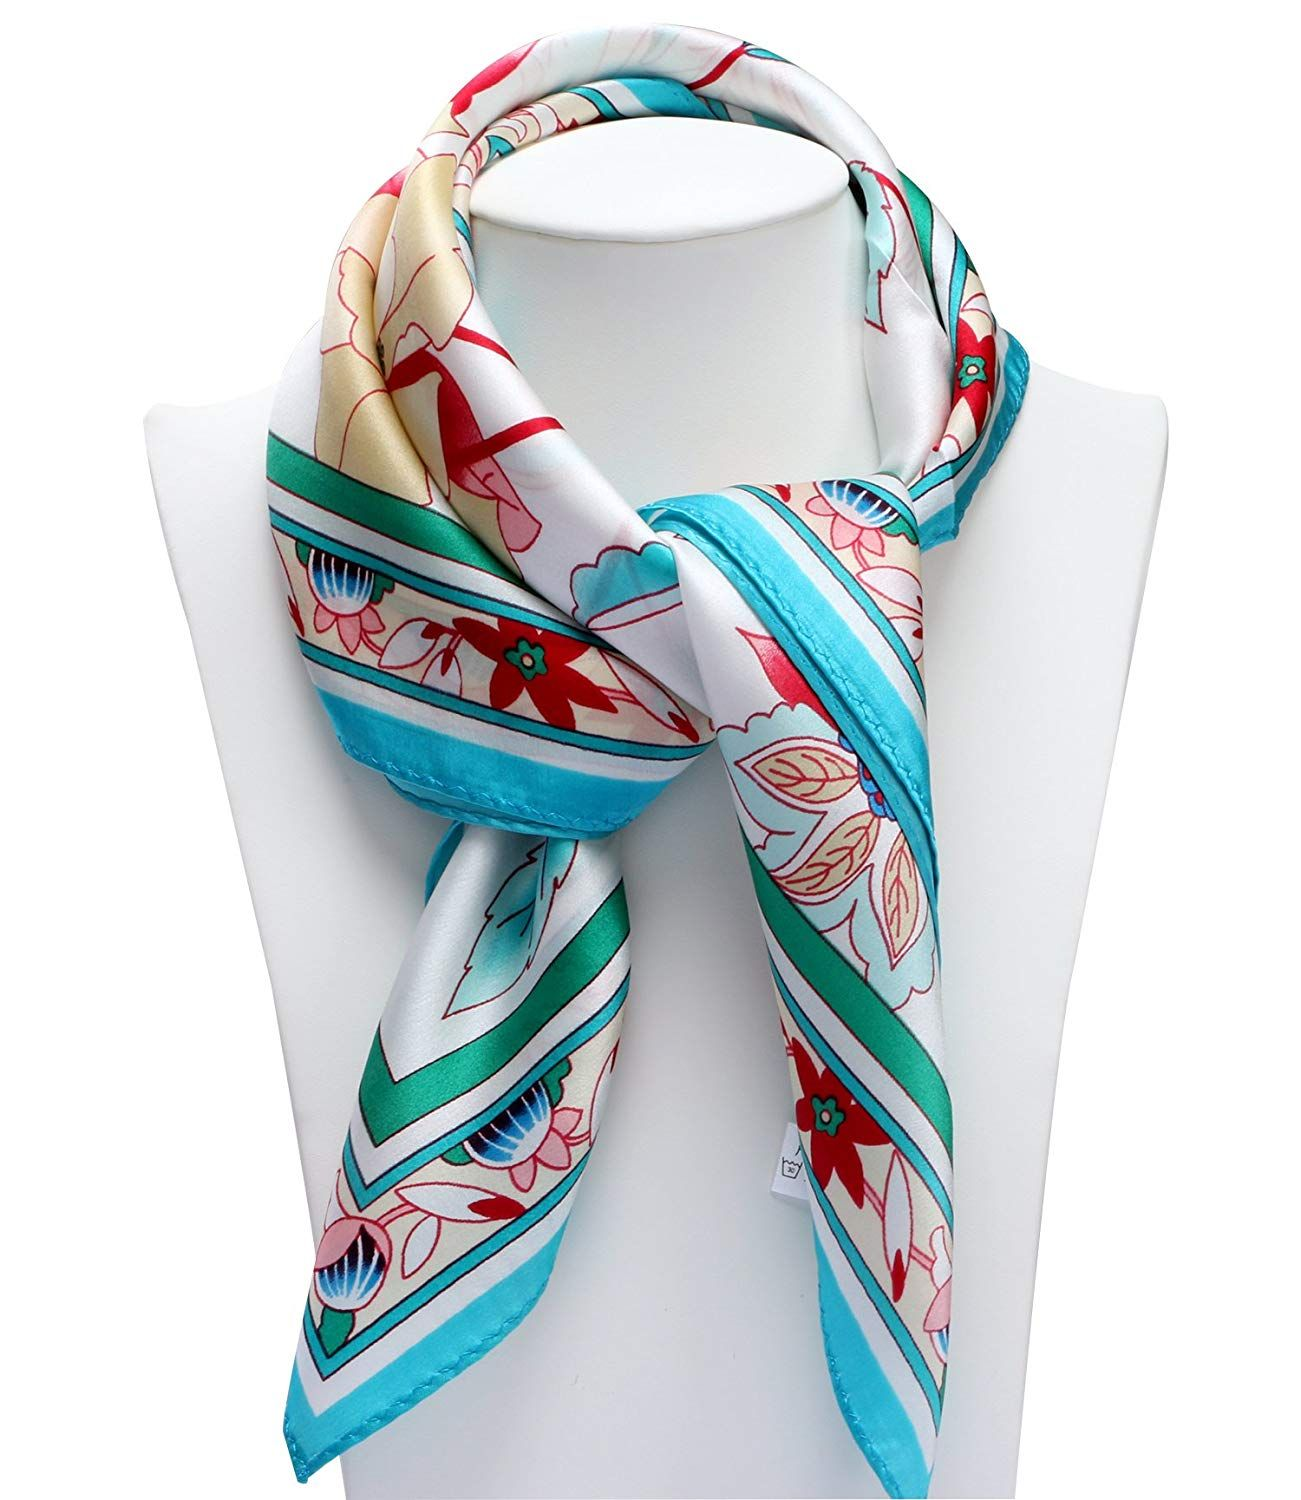 100 Silk Scarf Neckerchief Small Square Print Scarves Women Flower With Fruits White Pink At Amazon Women S Clothing Scarf Print Womens Scarves Neckerchiefs